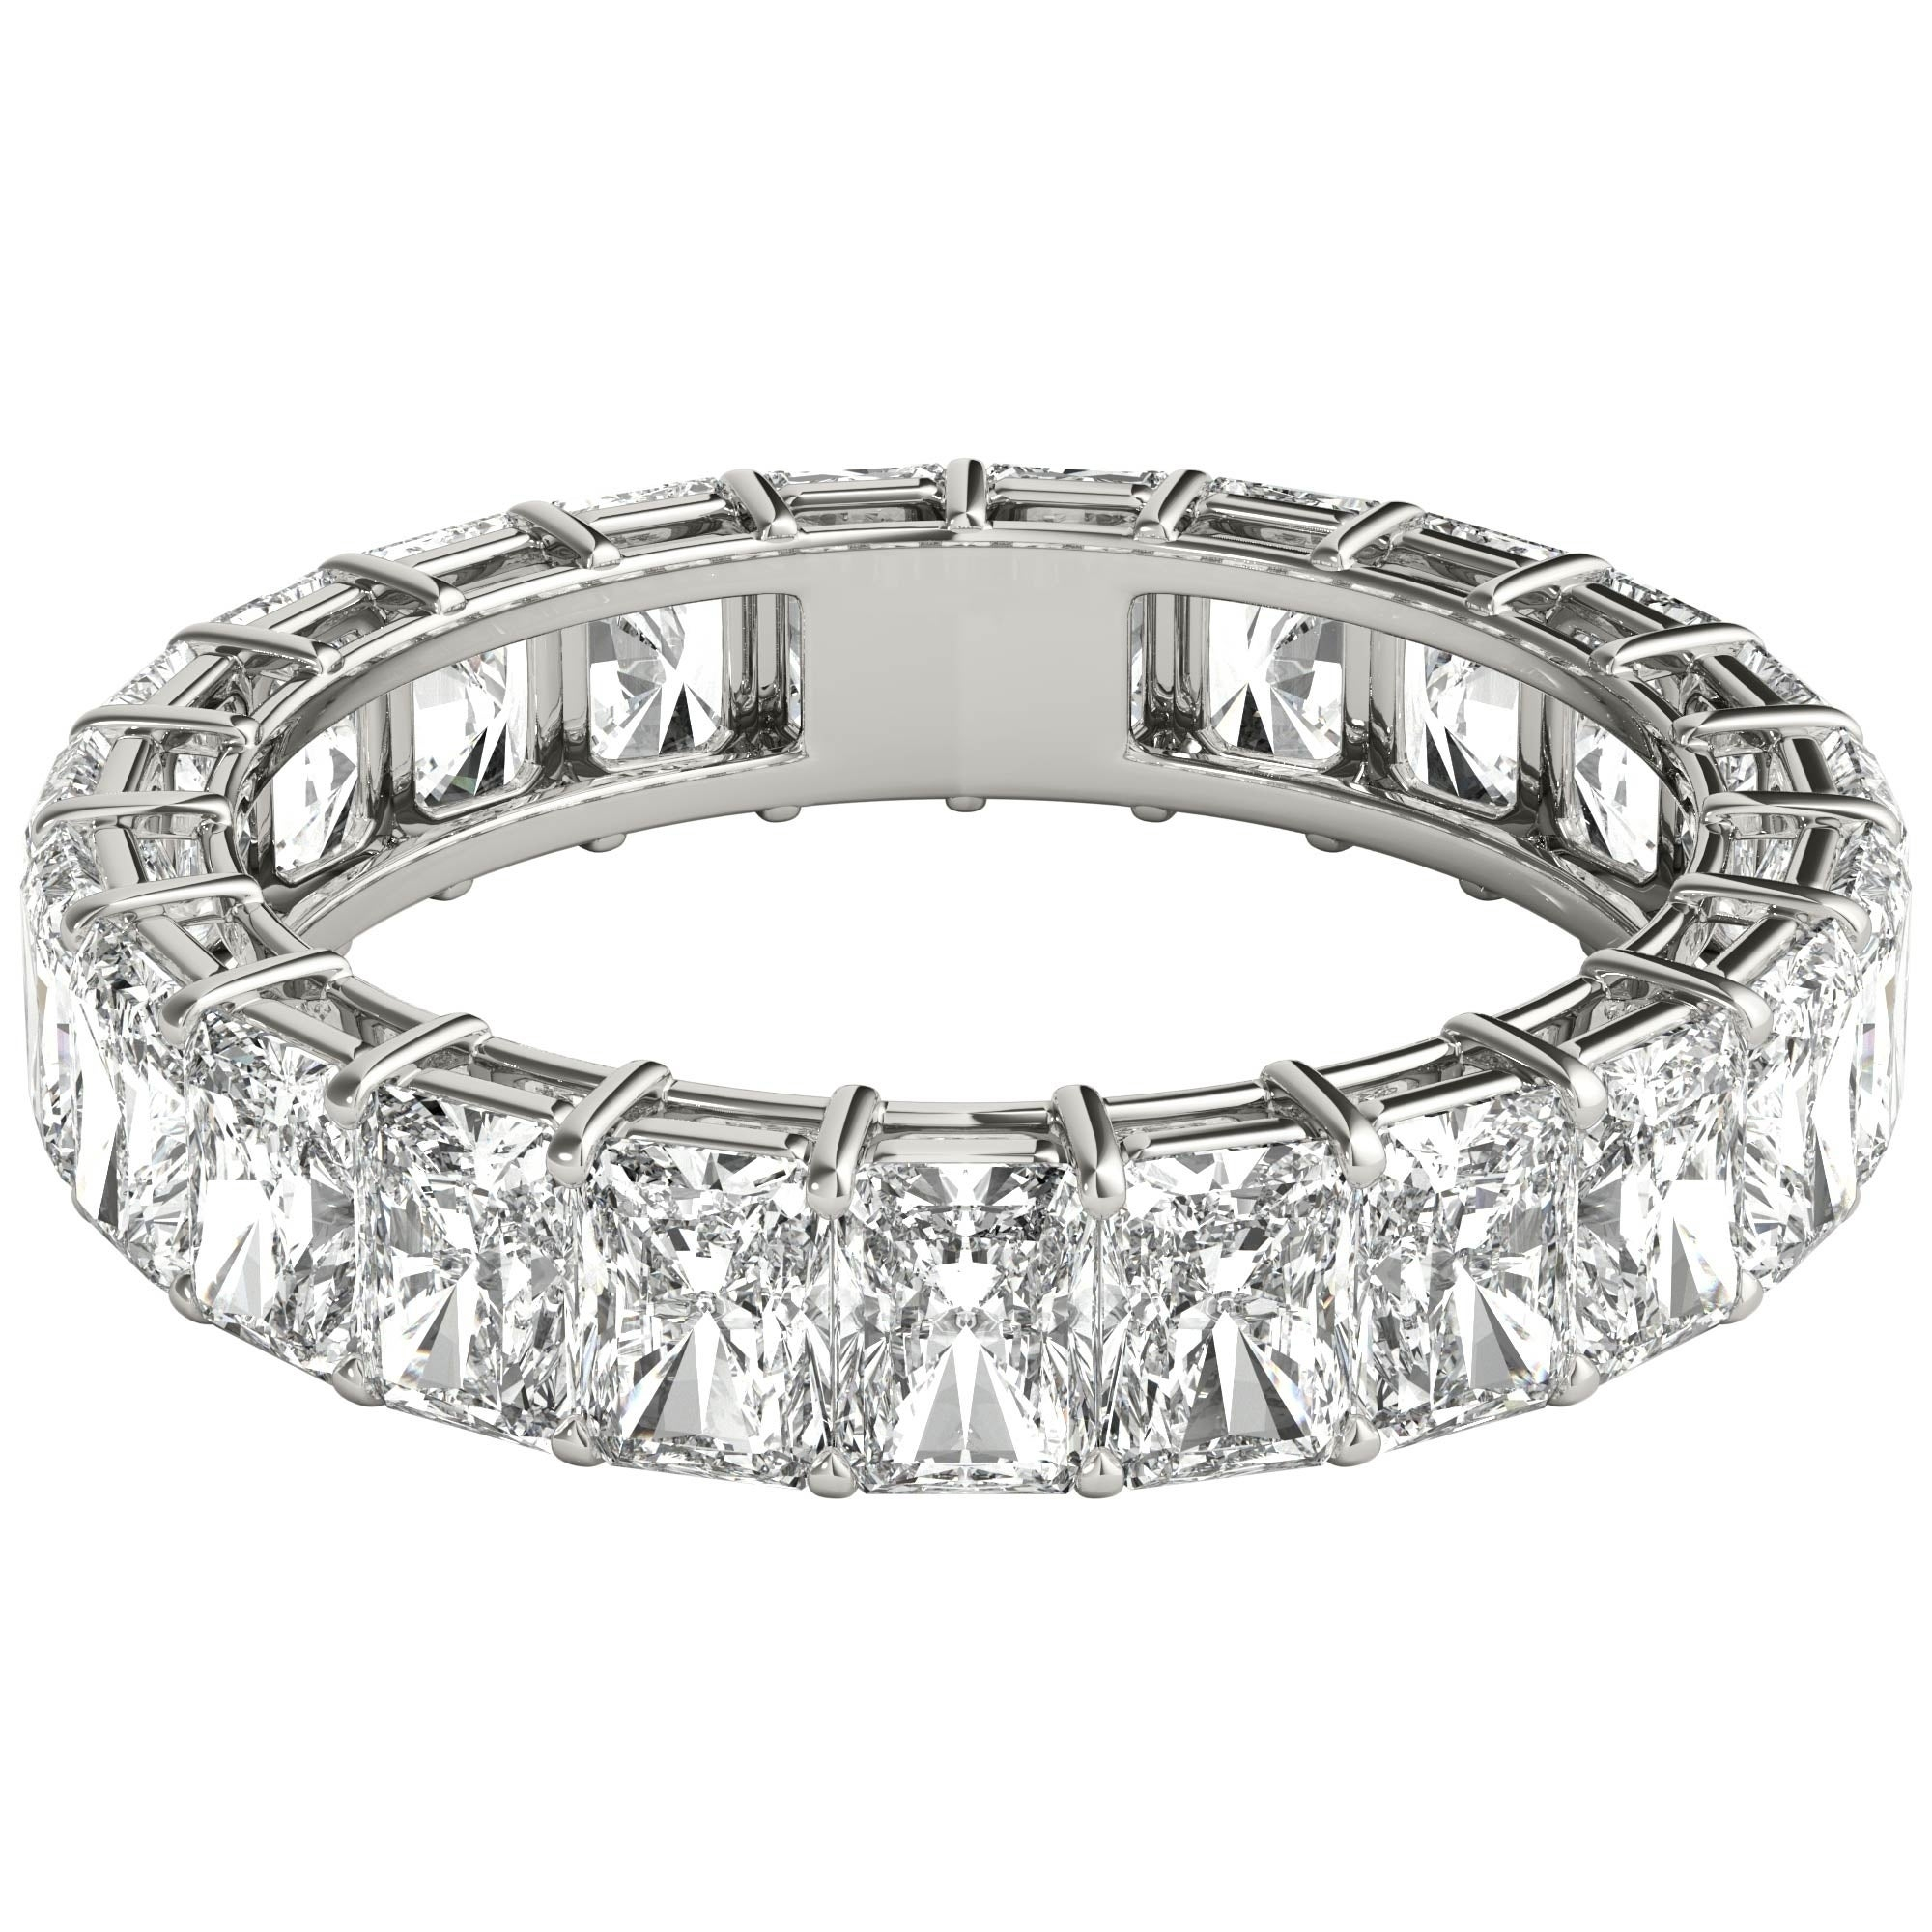 Seraphina 18K White Gold 6Ct Tdw Radiant Cut Diamond Eternity Ring Regarding Most Recent Celebration Ideal 1Diamond Five Stone Anniversary Bands In White Gold (View 21 of 25)